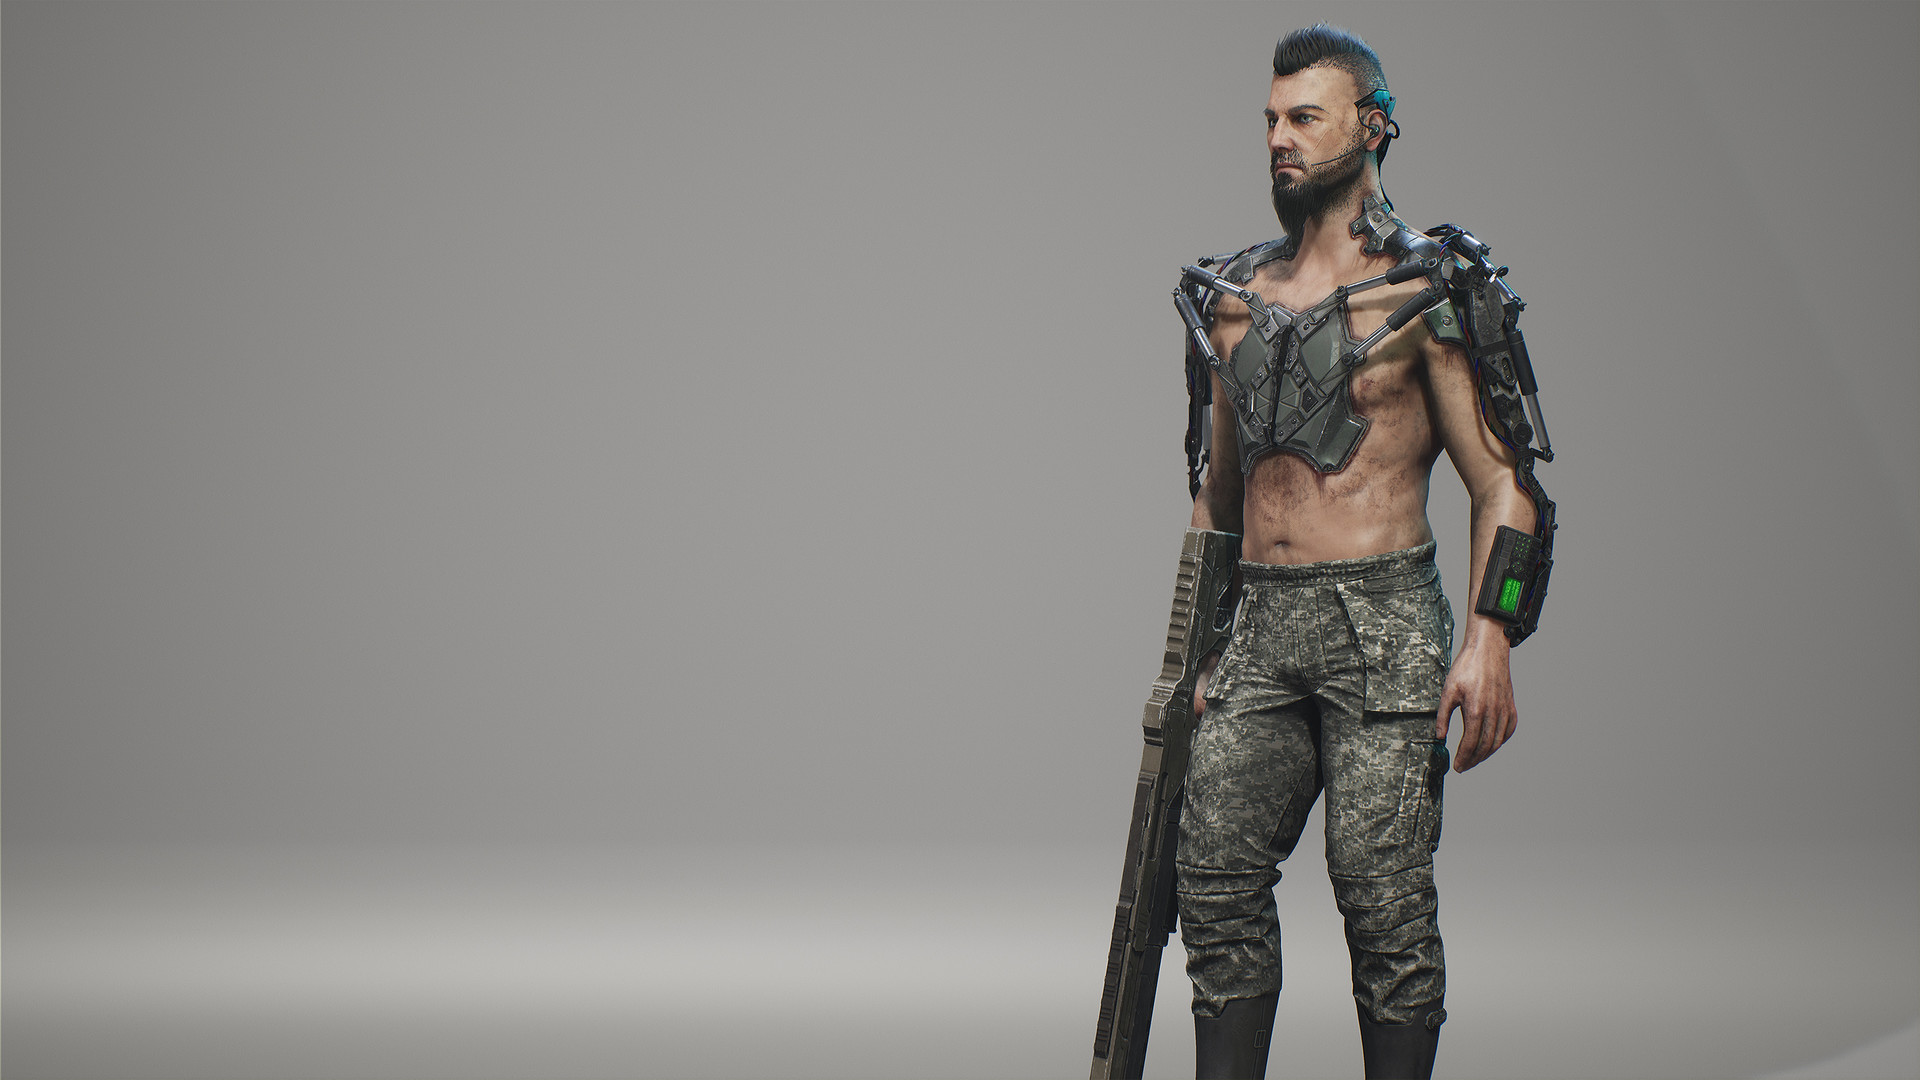 ArtStation - Realtime Character in Unreal Engine 4 for free